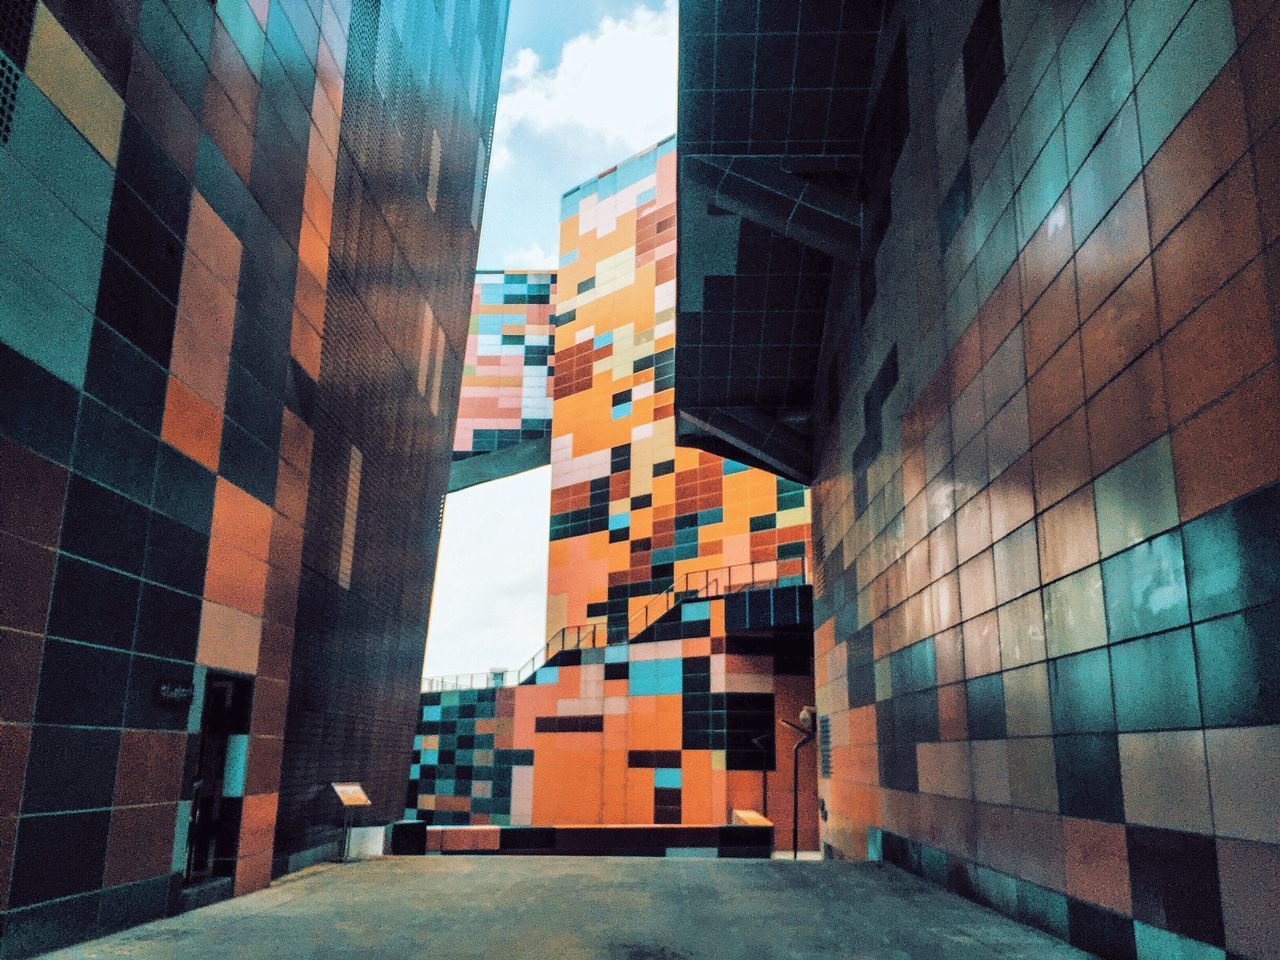 Architecture Architectural Detail The Architect - 2016 EyeEm Awards Colors Colorful Wall Wall - Building Feature